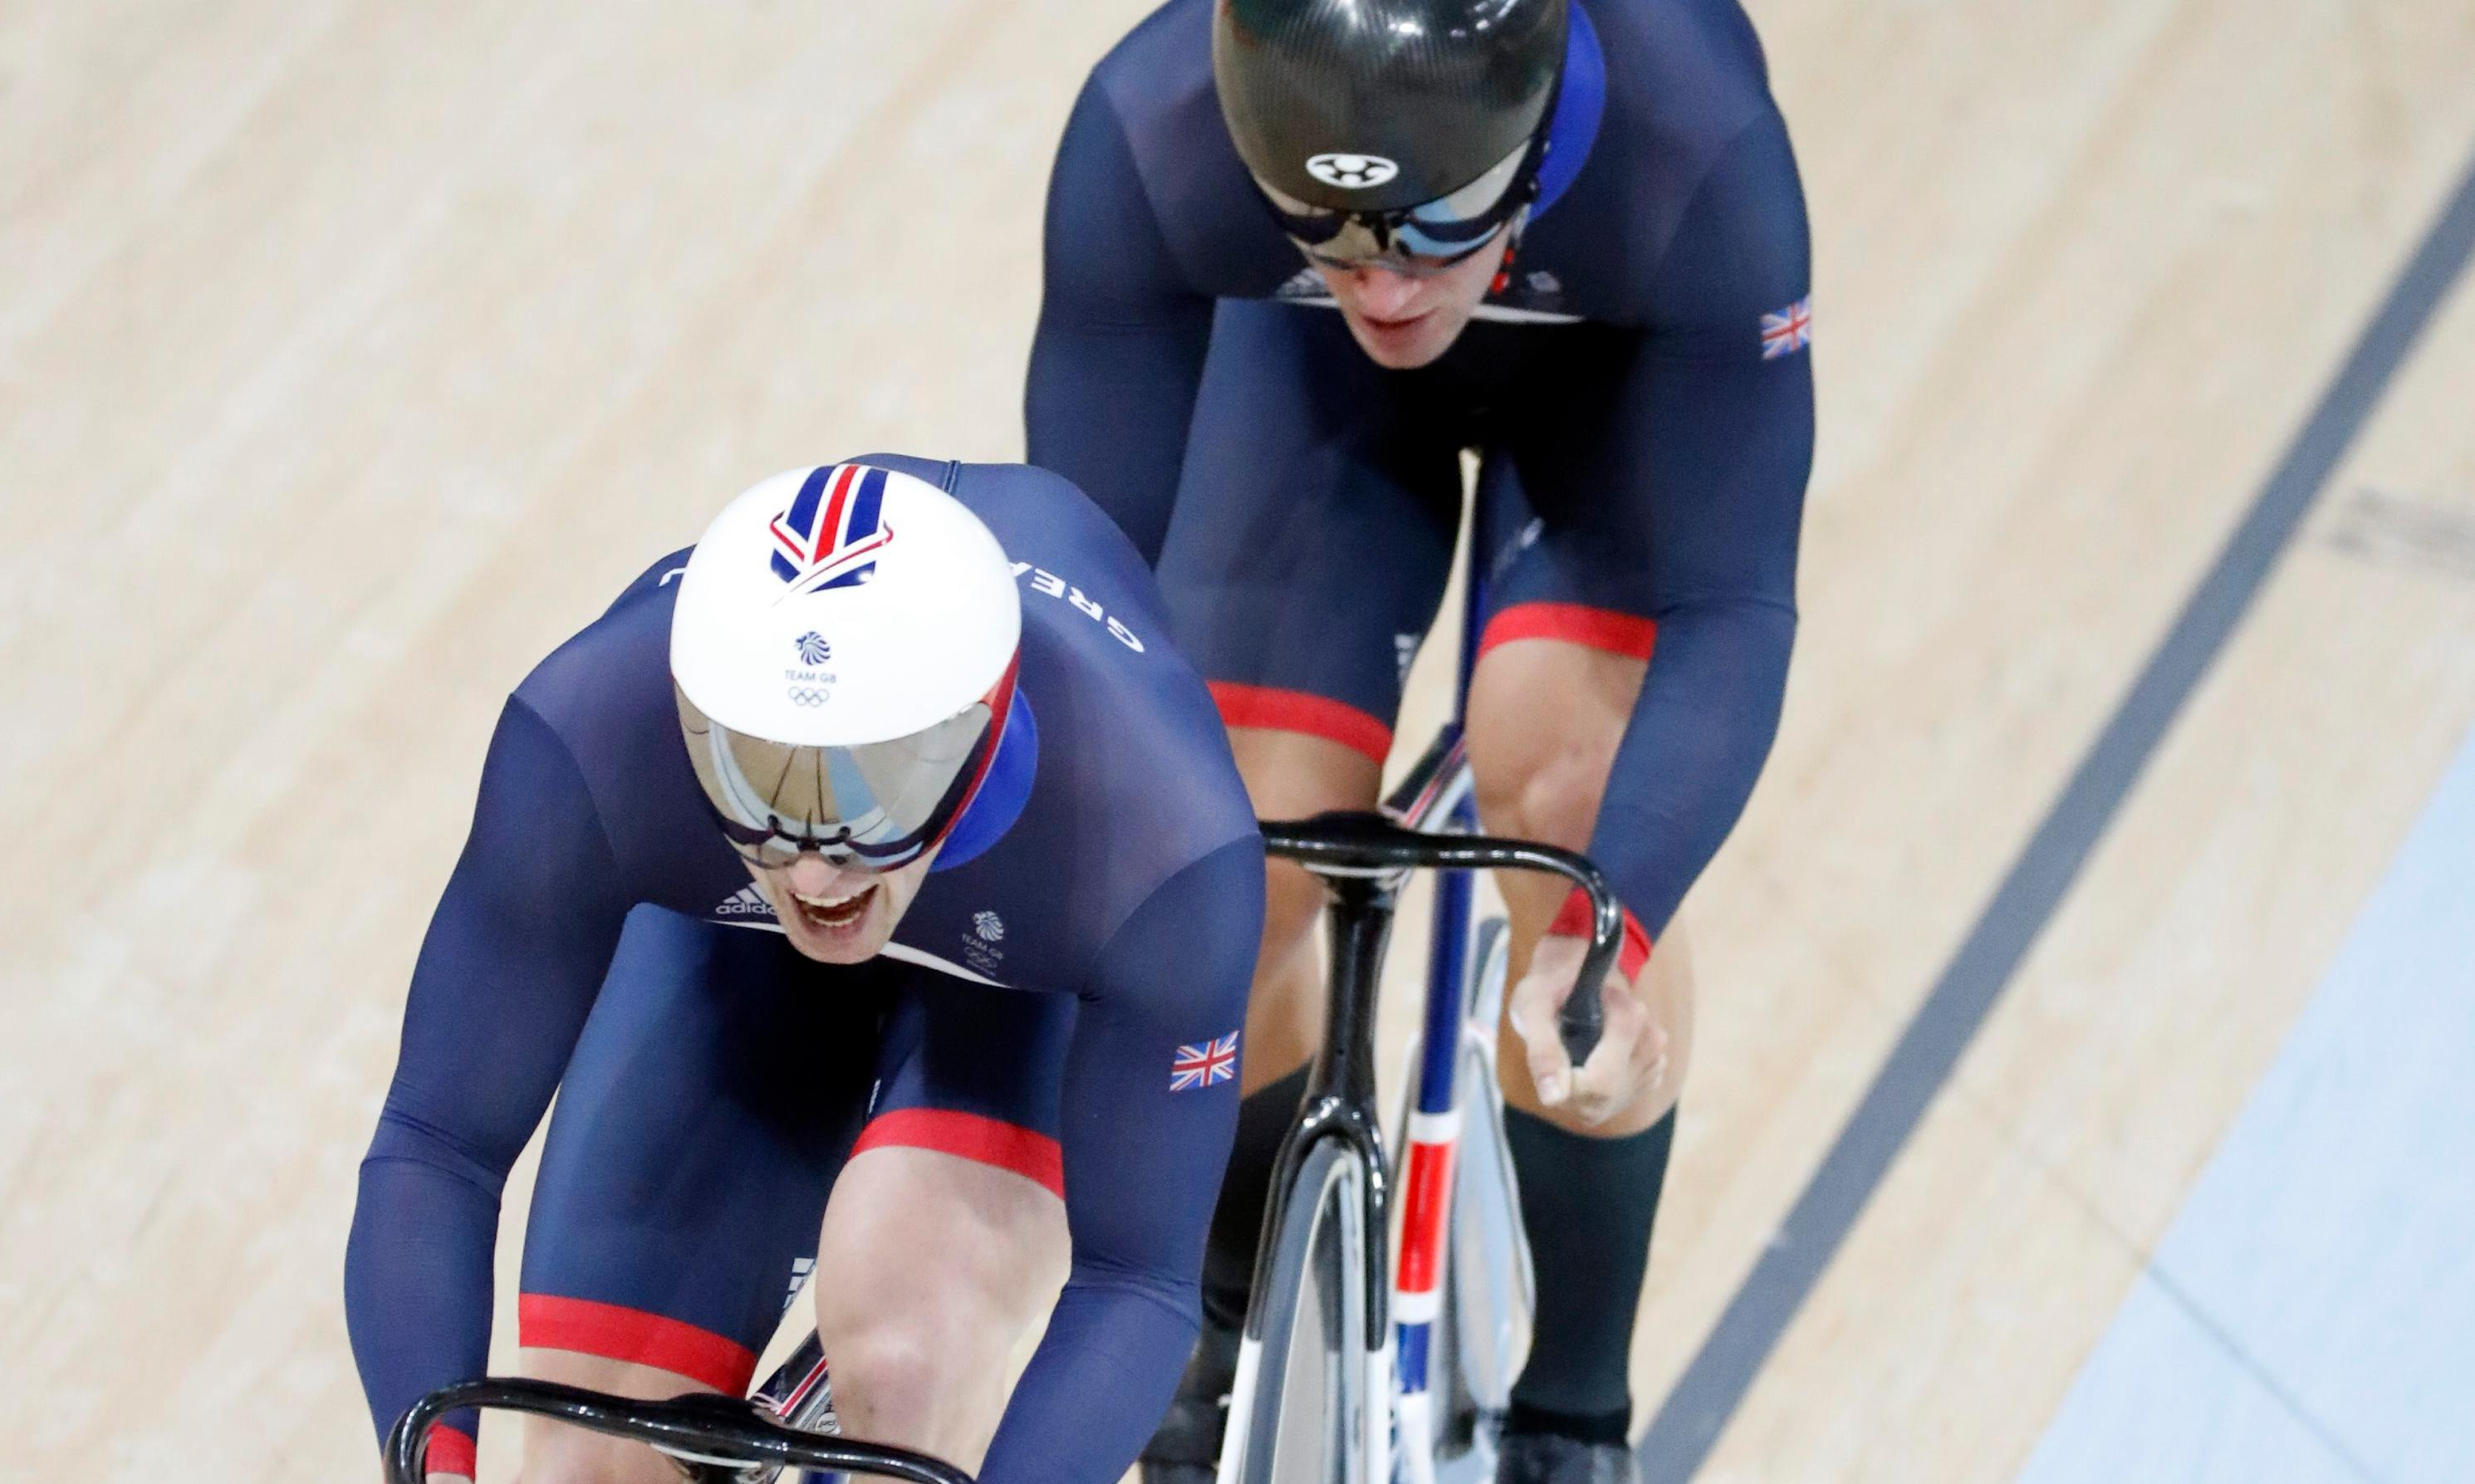 Jason Kenny and Callum Skinner to battle for individual sprint cycling gold